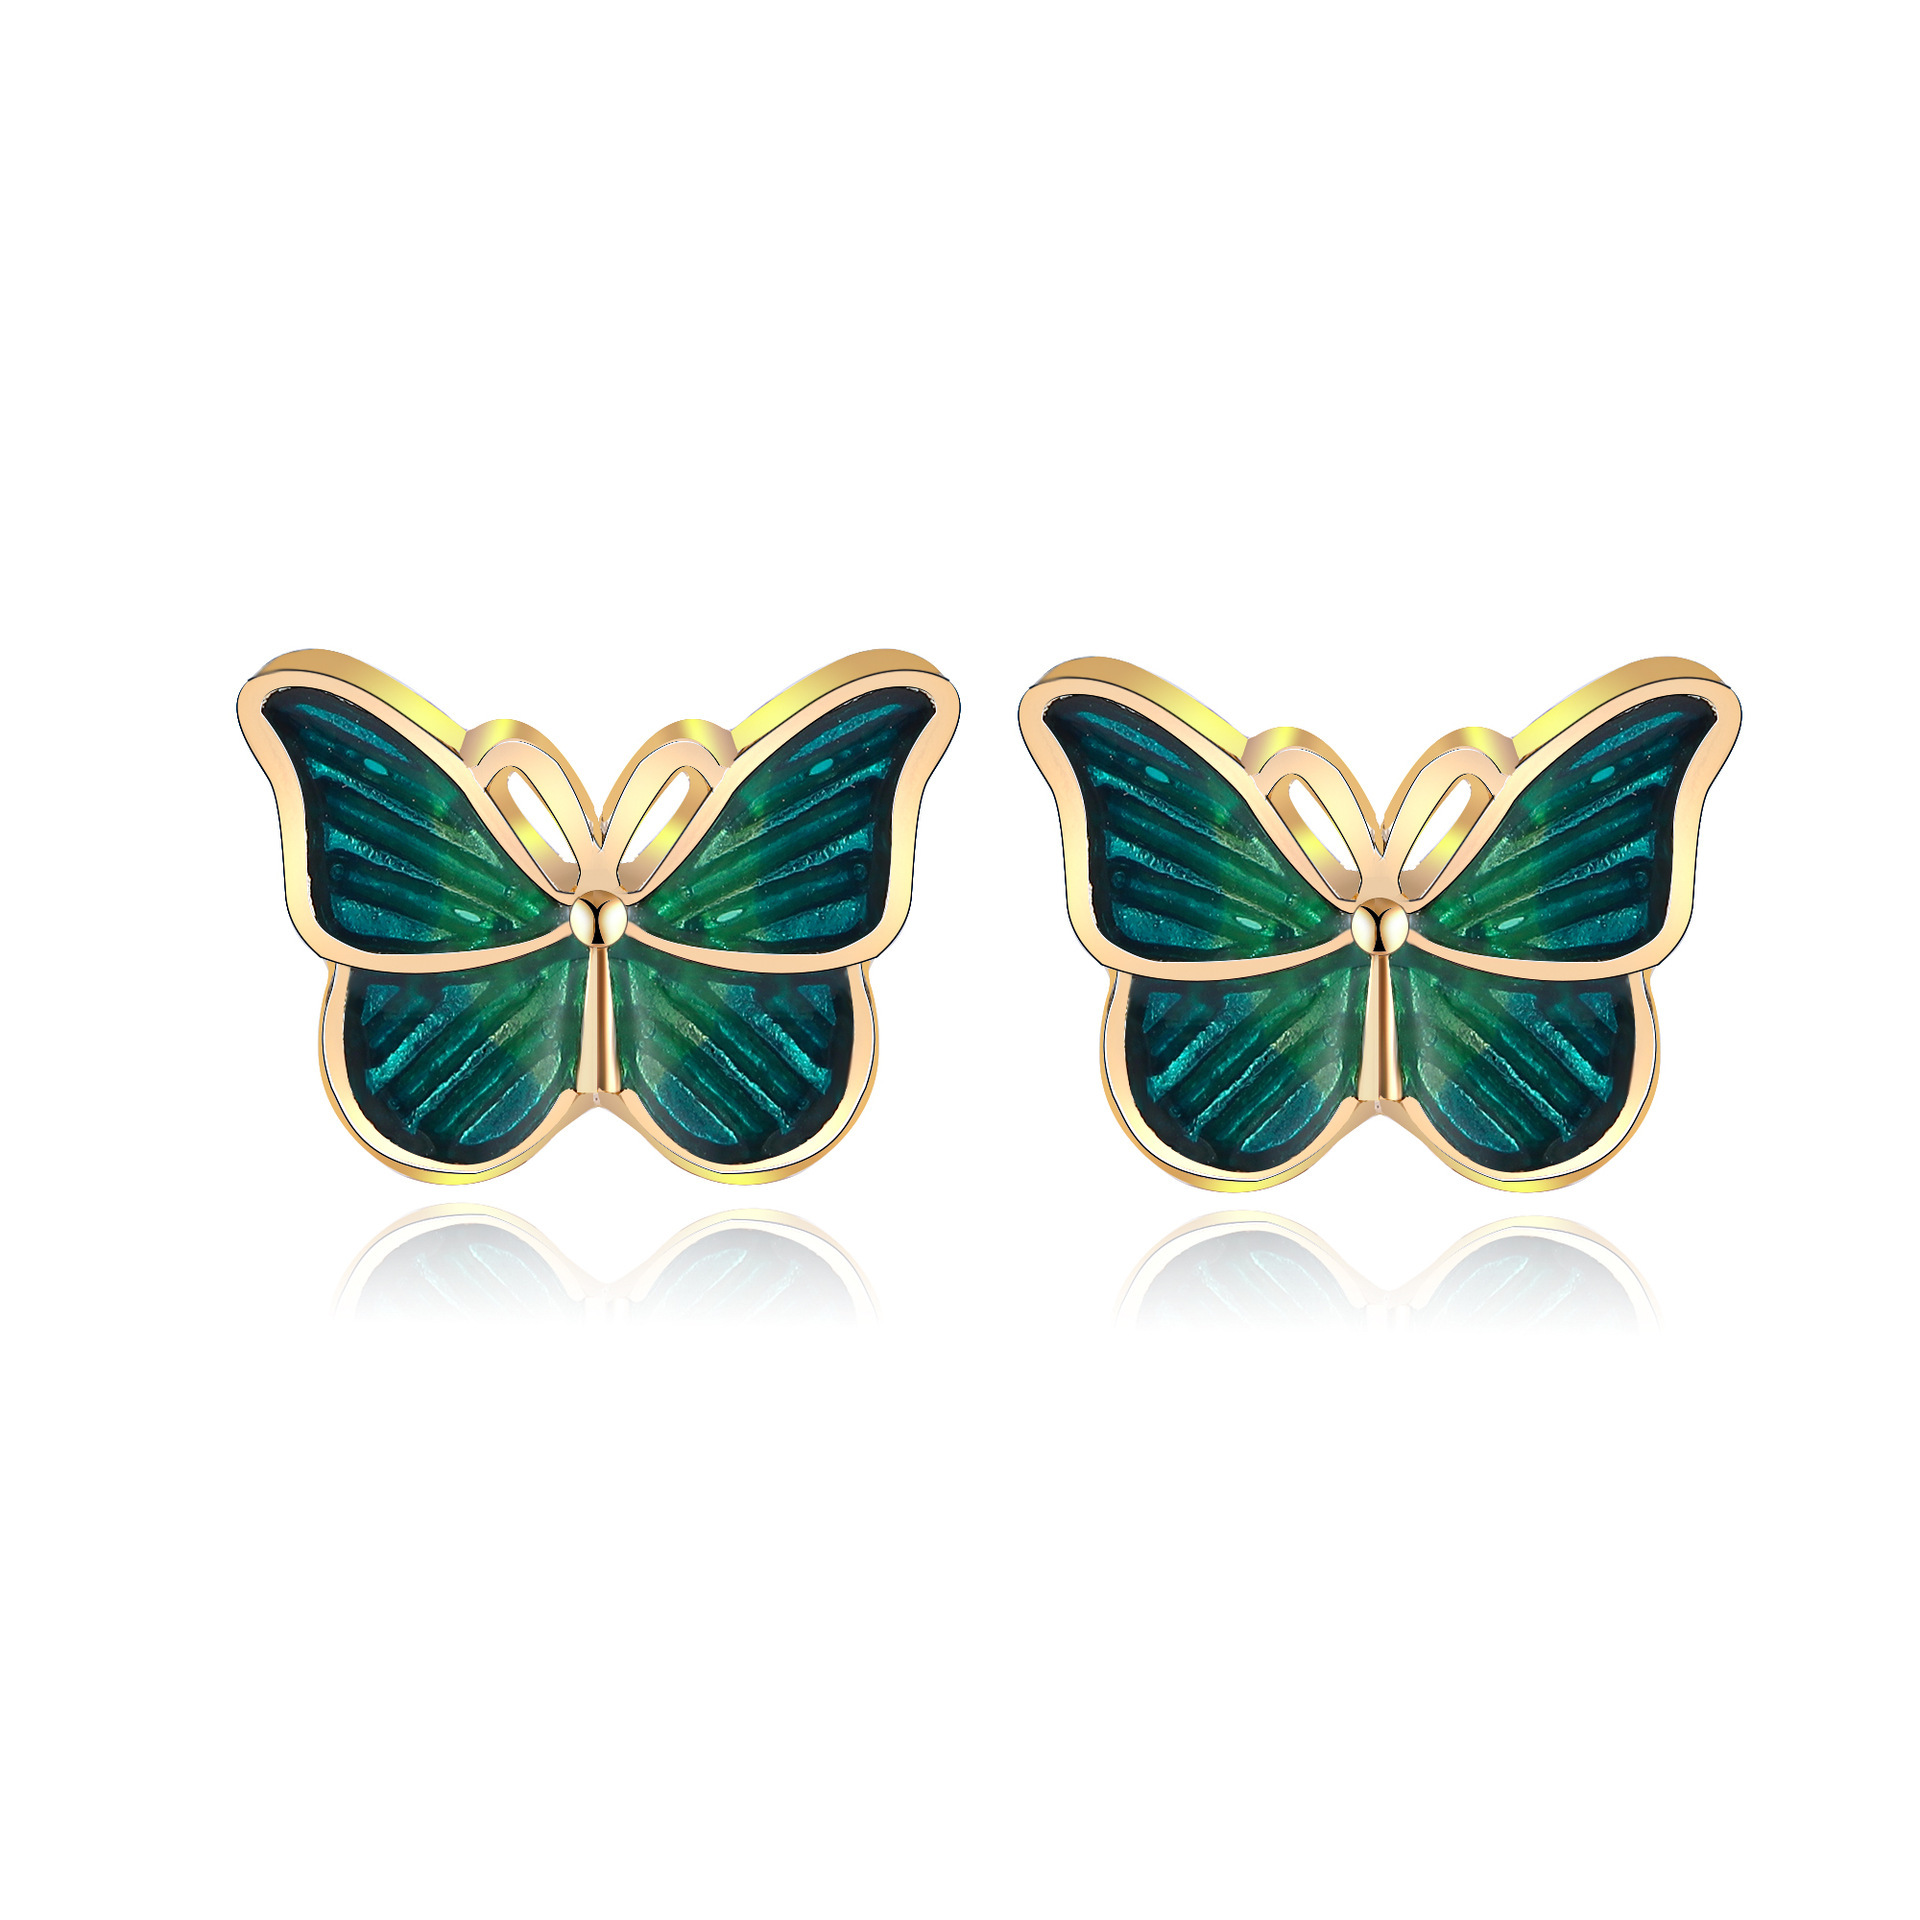 Fascinating Butterfly Earrings for Matching Dainty Outfits